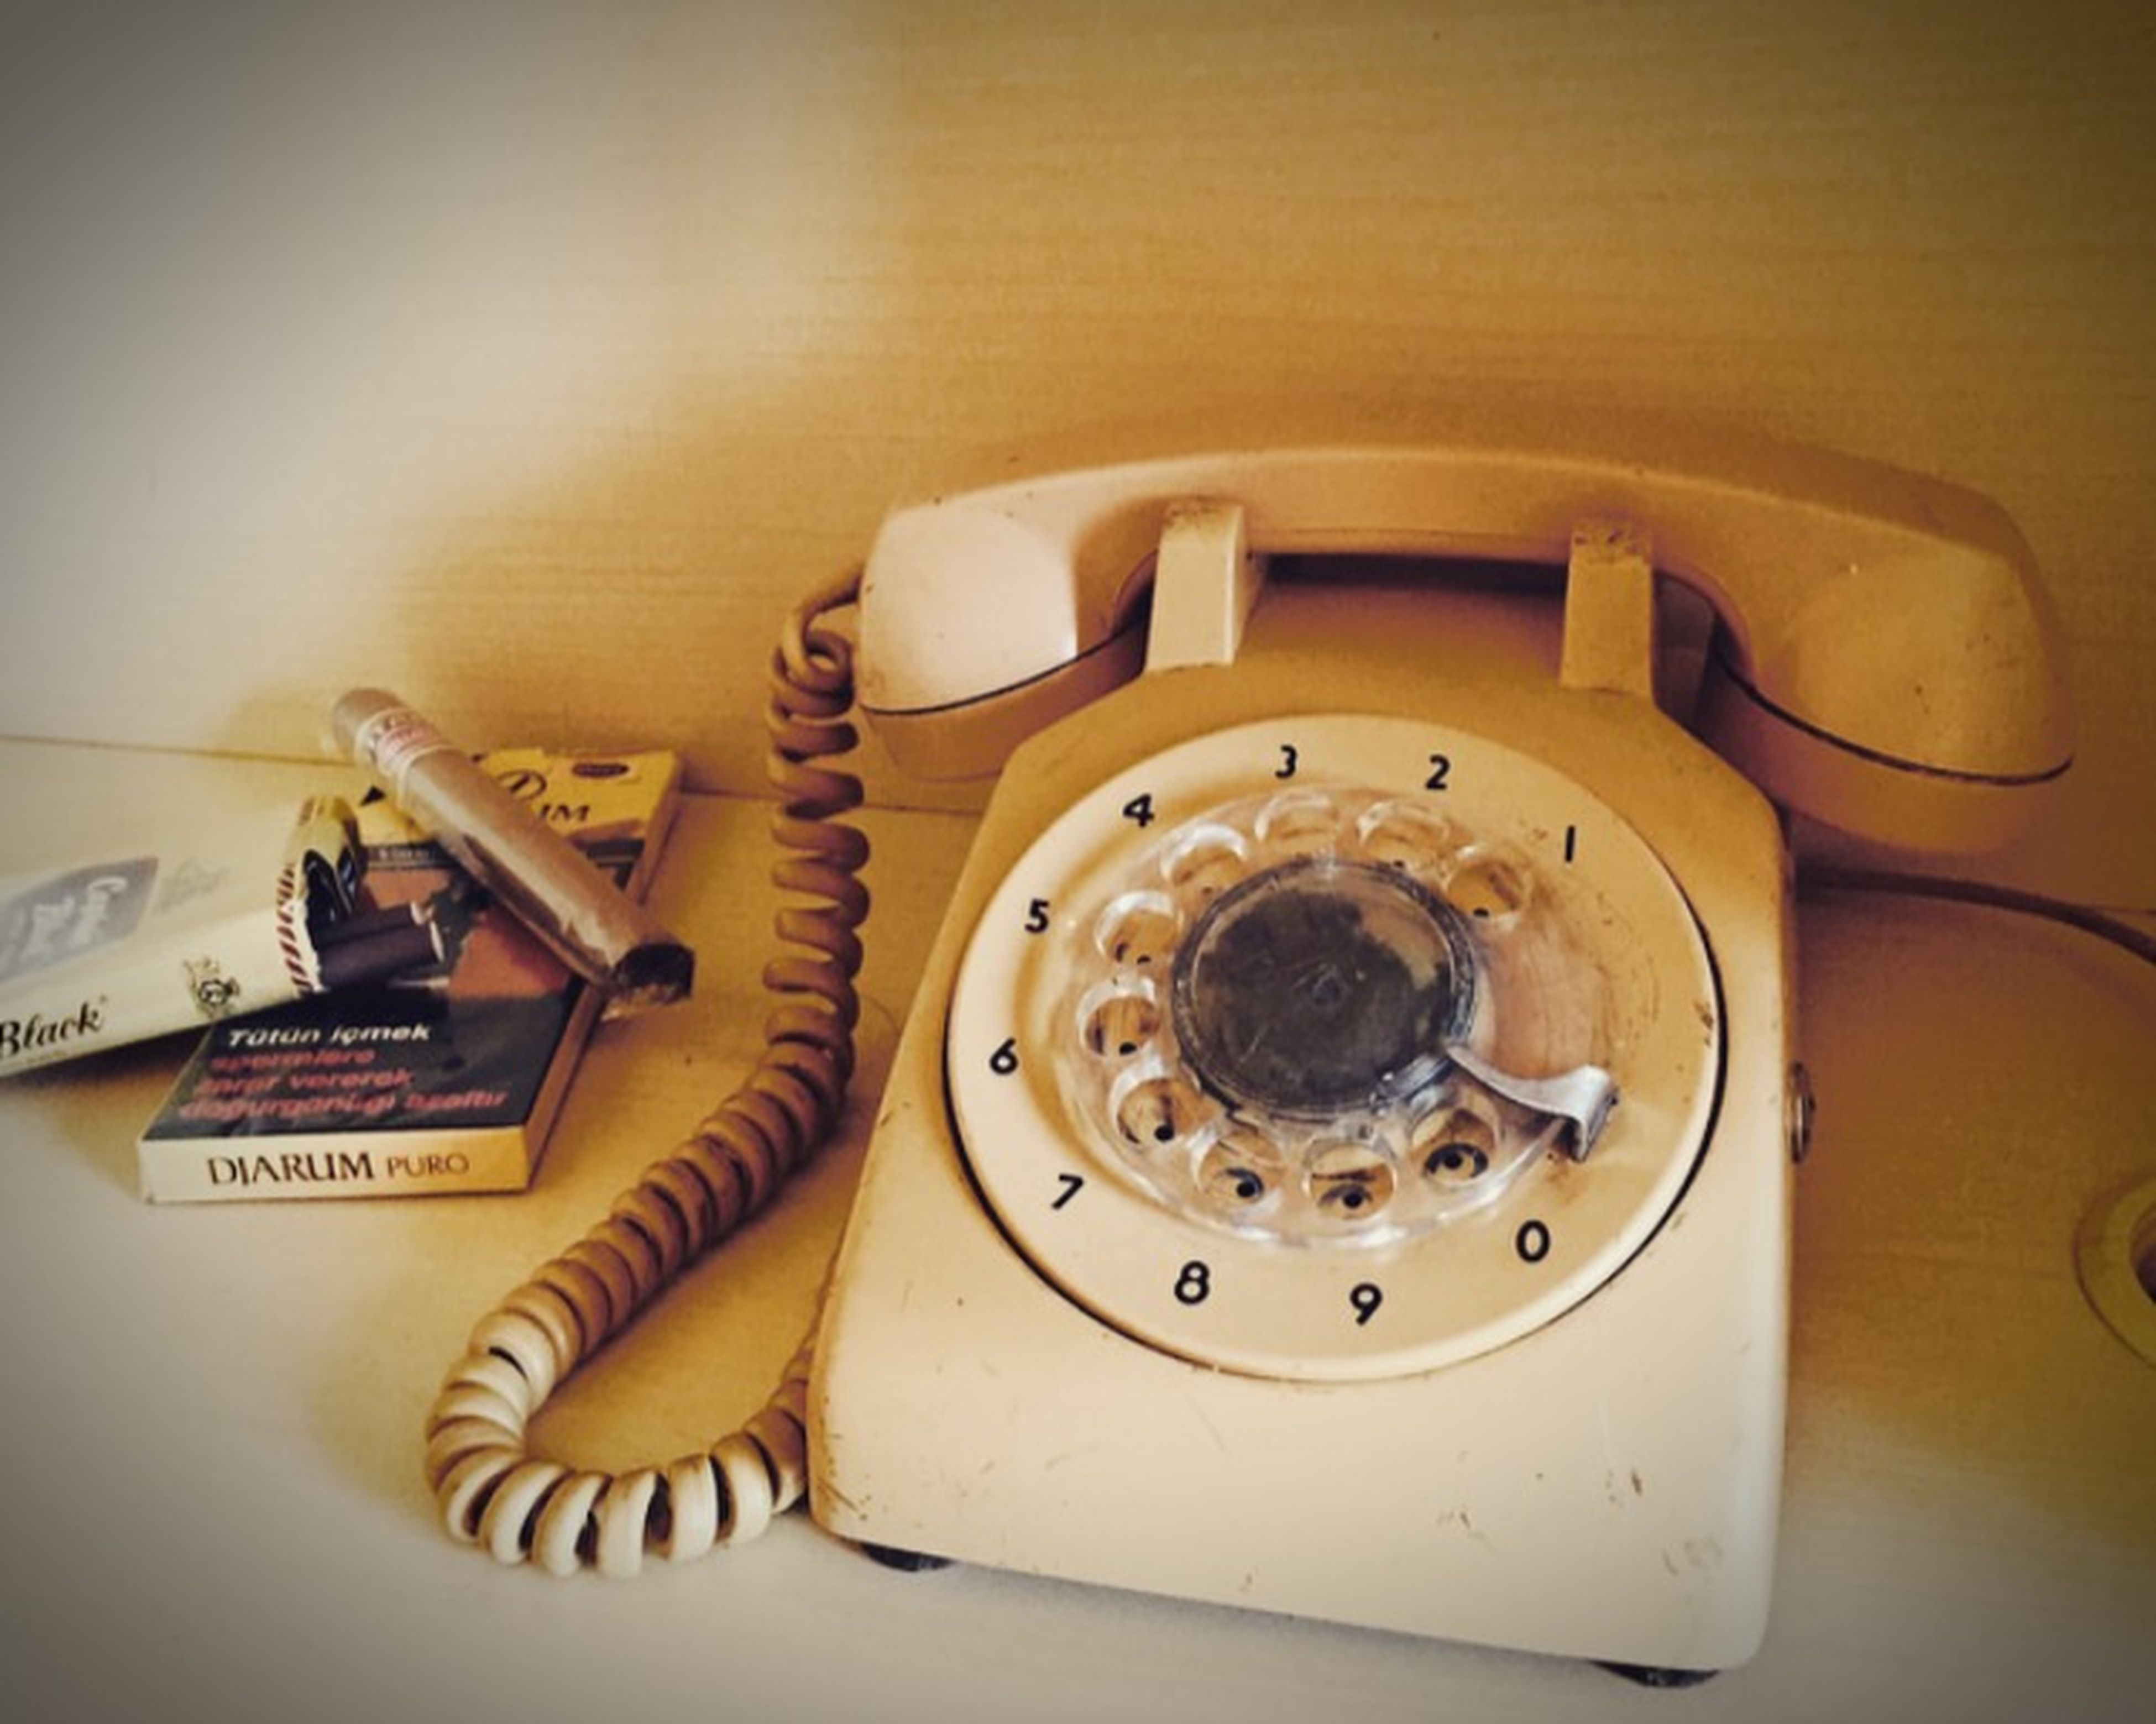 indoors, technology, table, still life, old-fashioned, close-up, high angle view, retro styled, machinery, no people, equipment, communication, home interior, antique, telephone, metal, wood - material, number, white color, connection